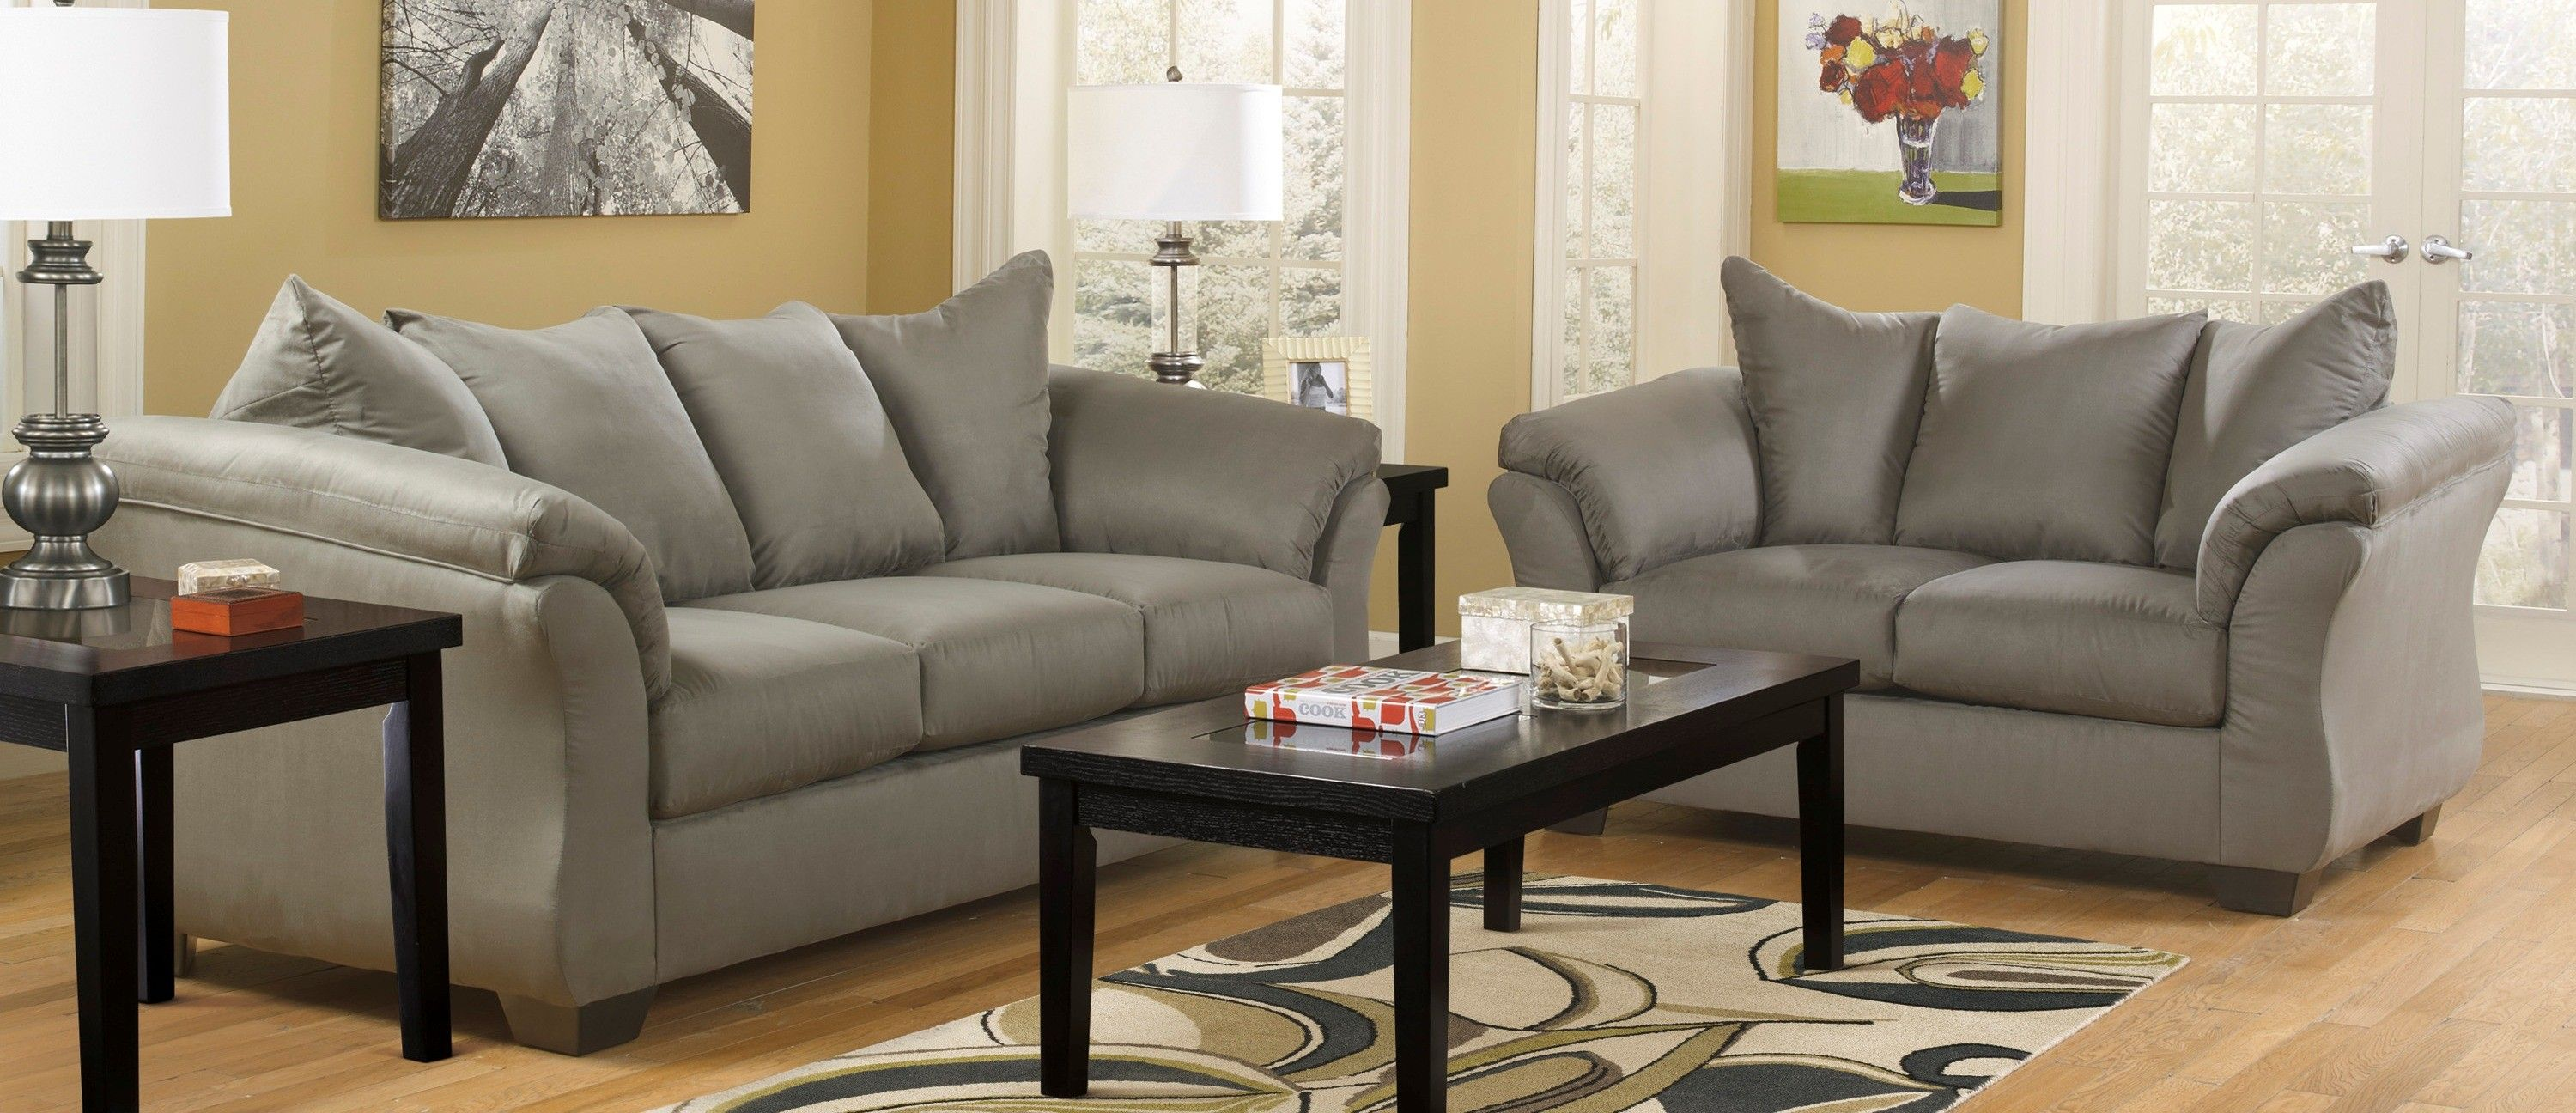 Nice Ashley Sofa Reviews New 27 About Remodel Design Ideas With